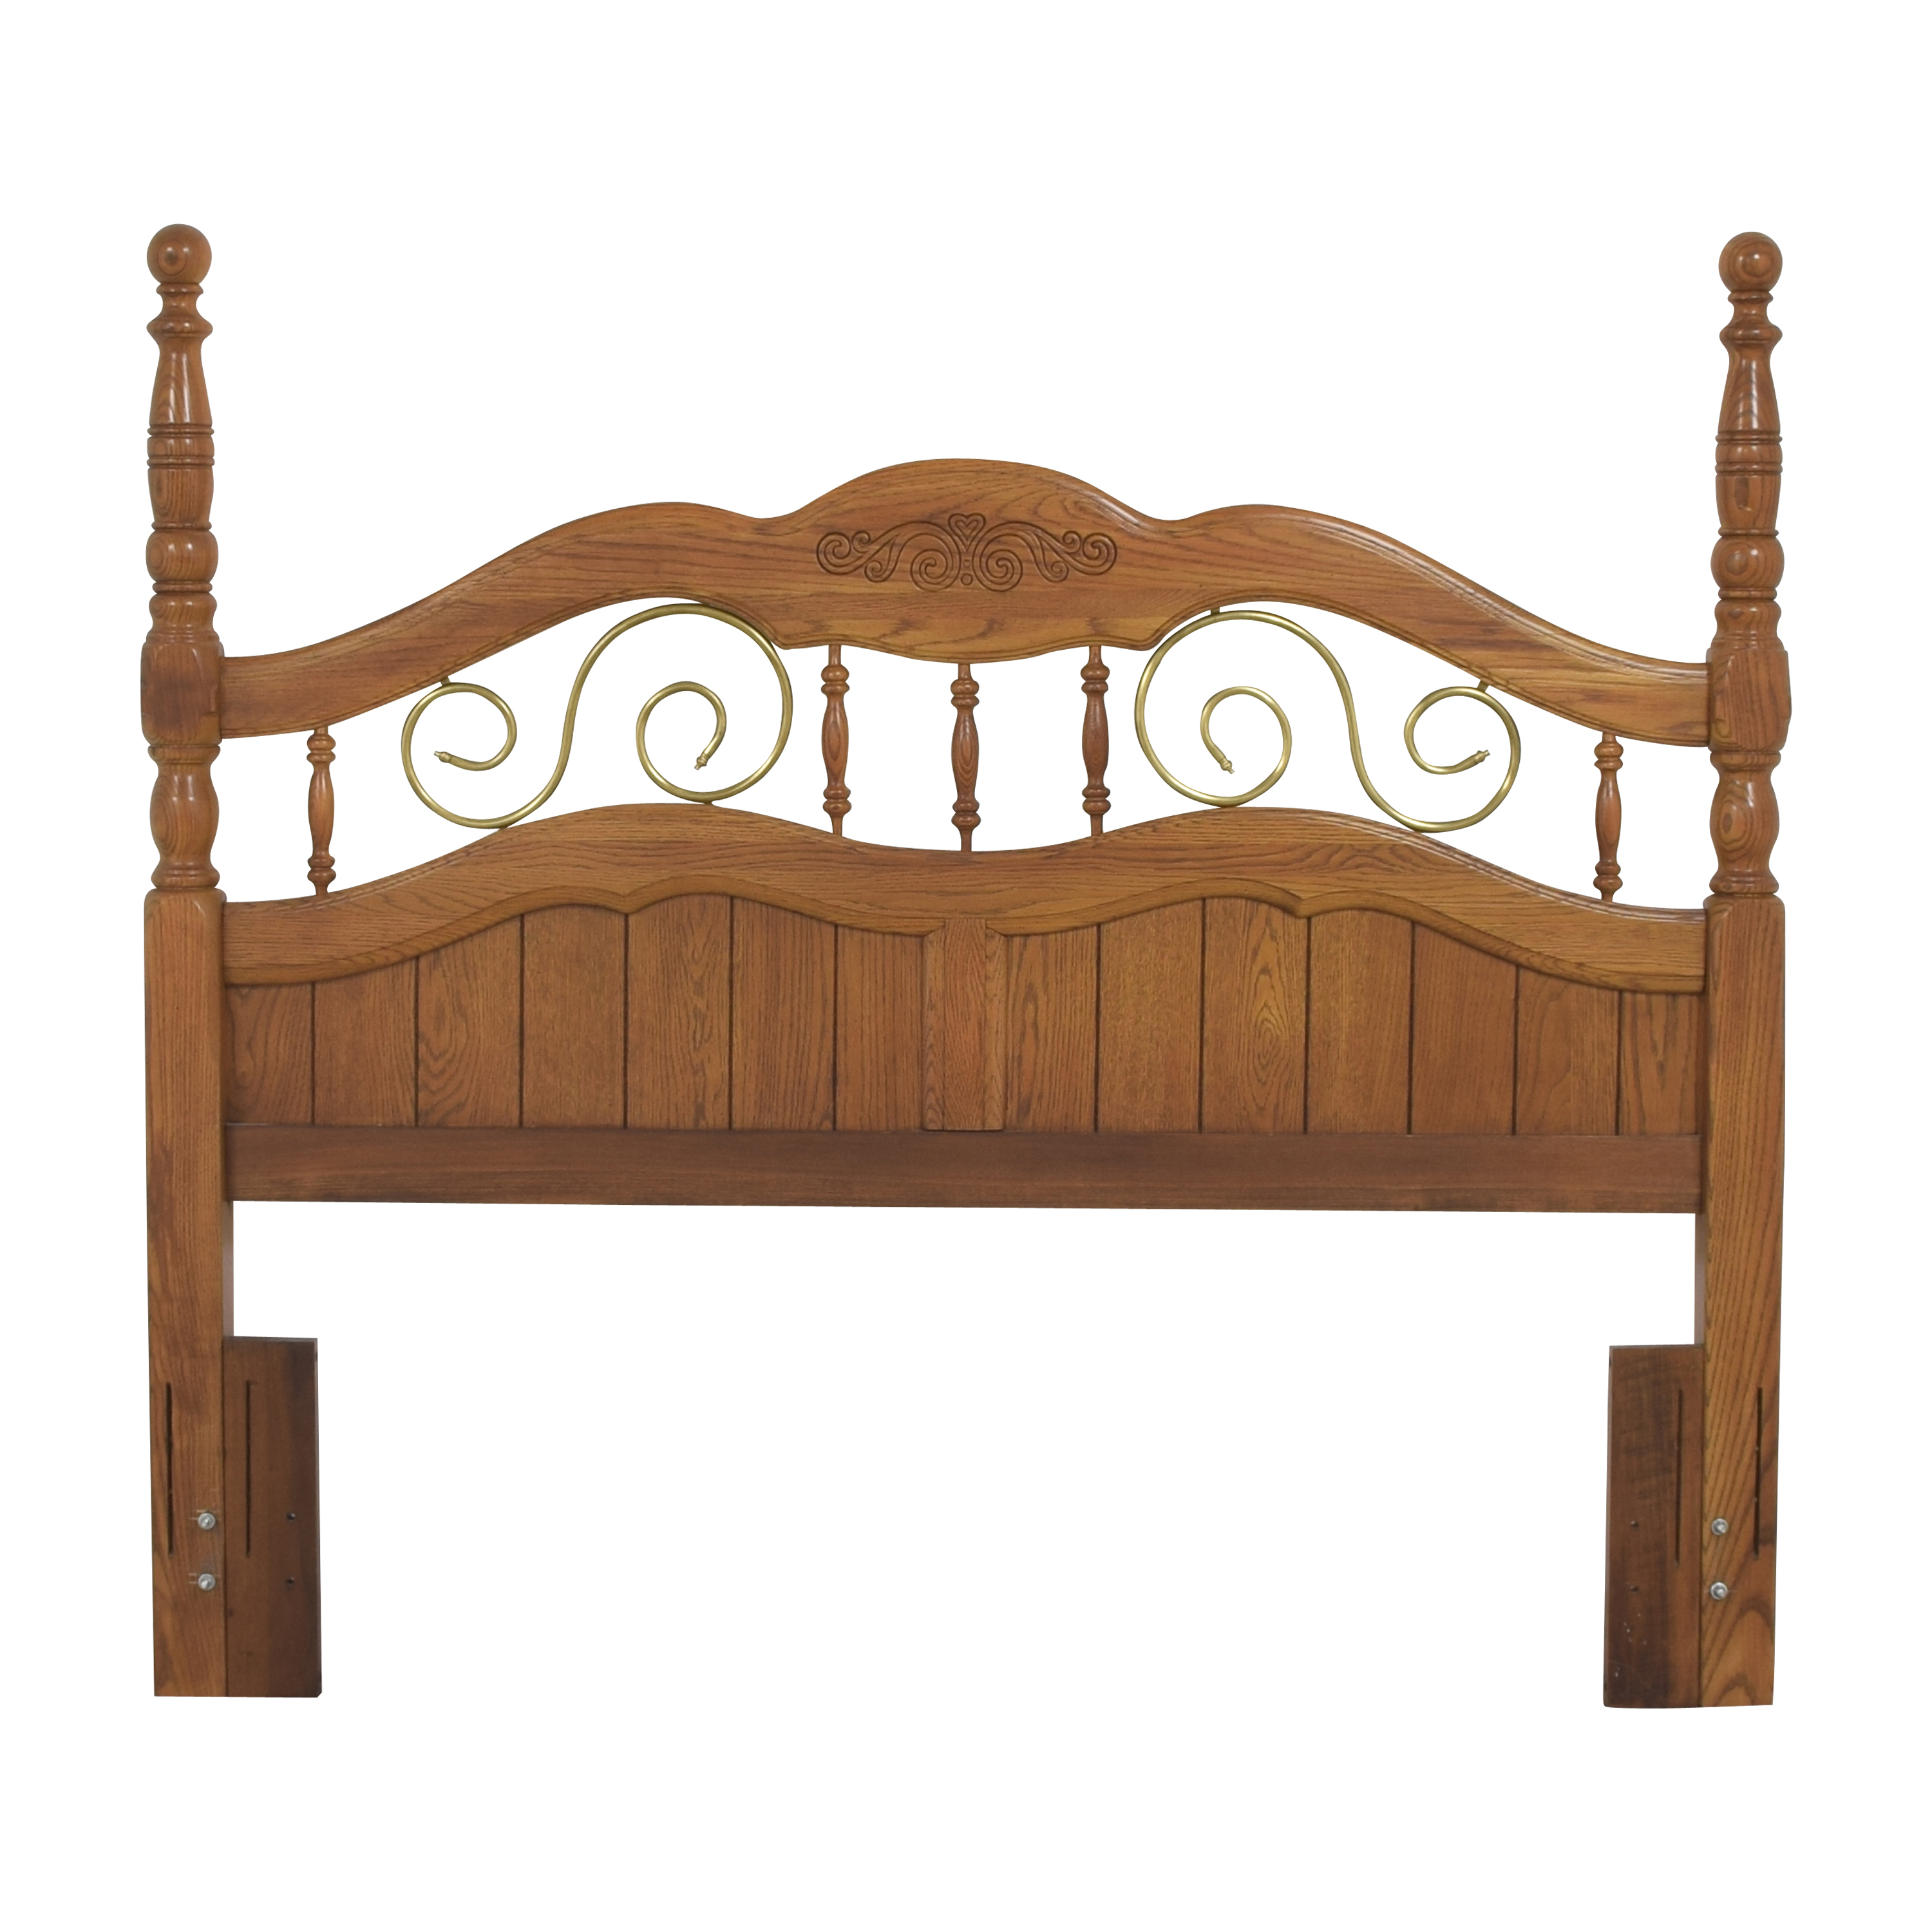 Stanley Furniture Stanley Furniture Queen Poster Headboard nj